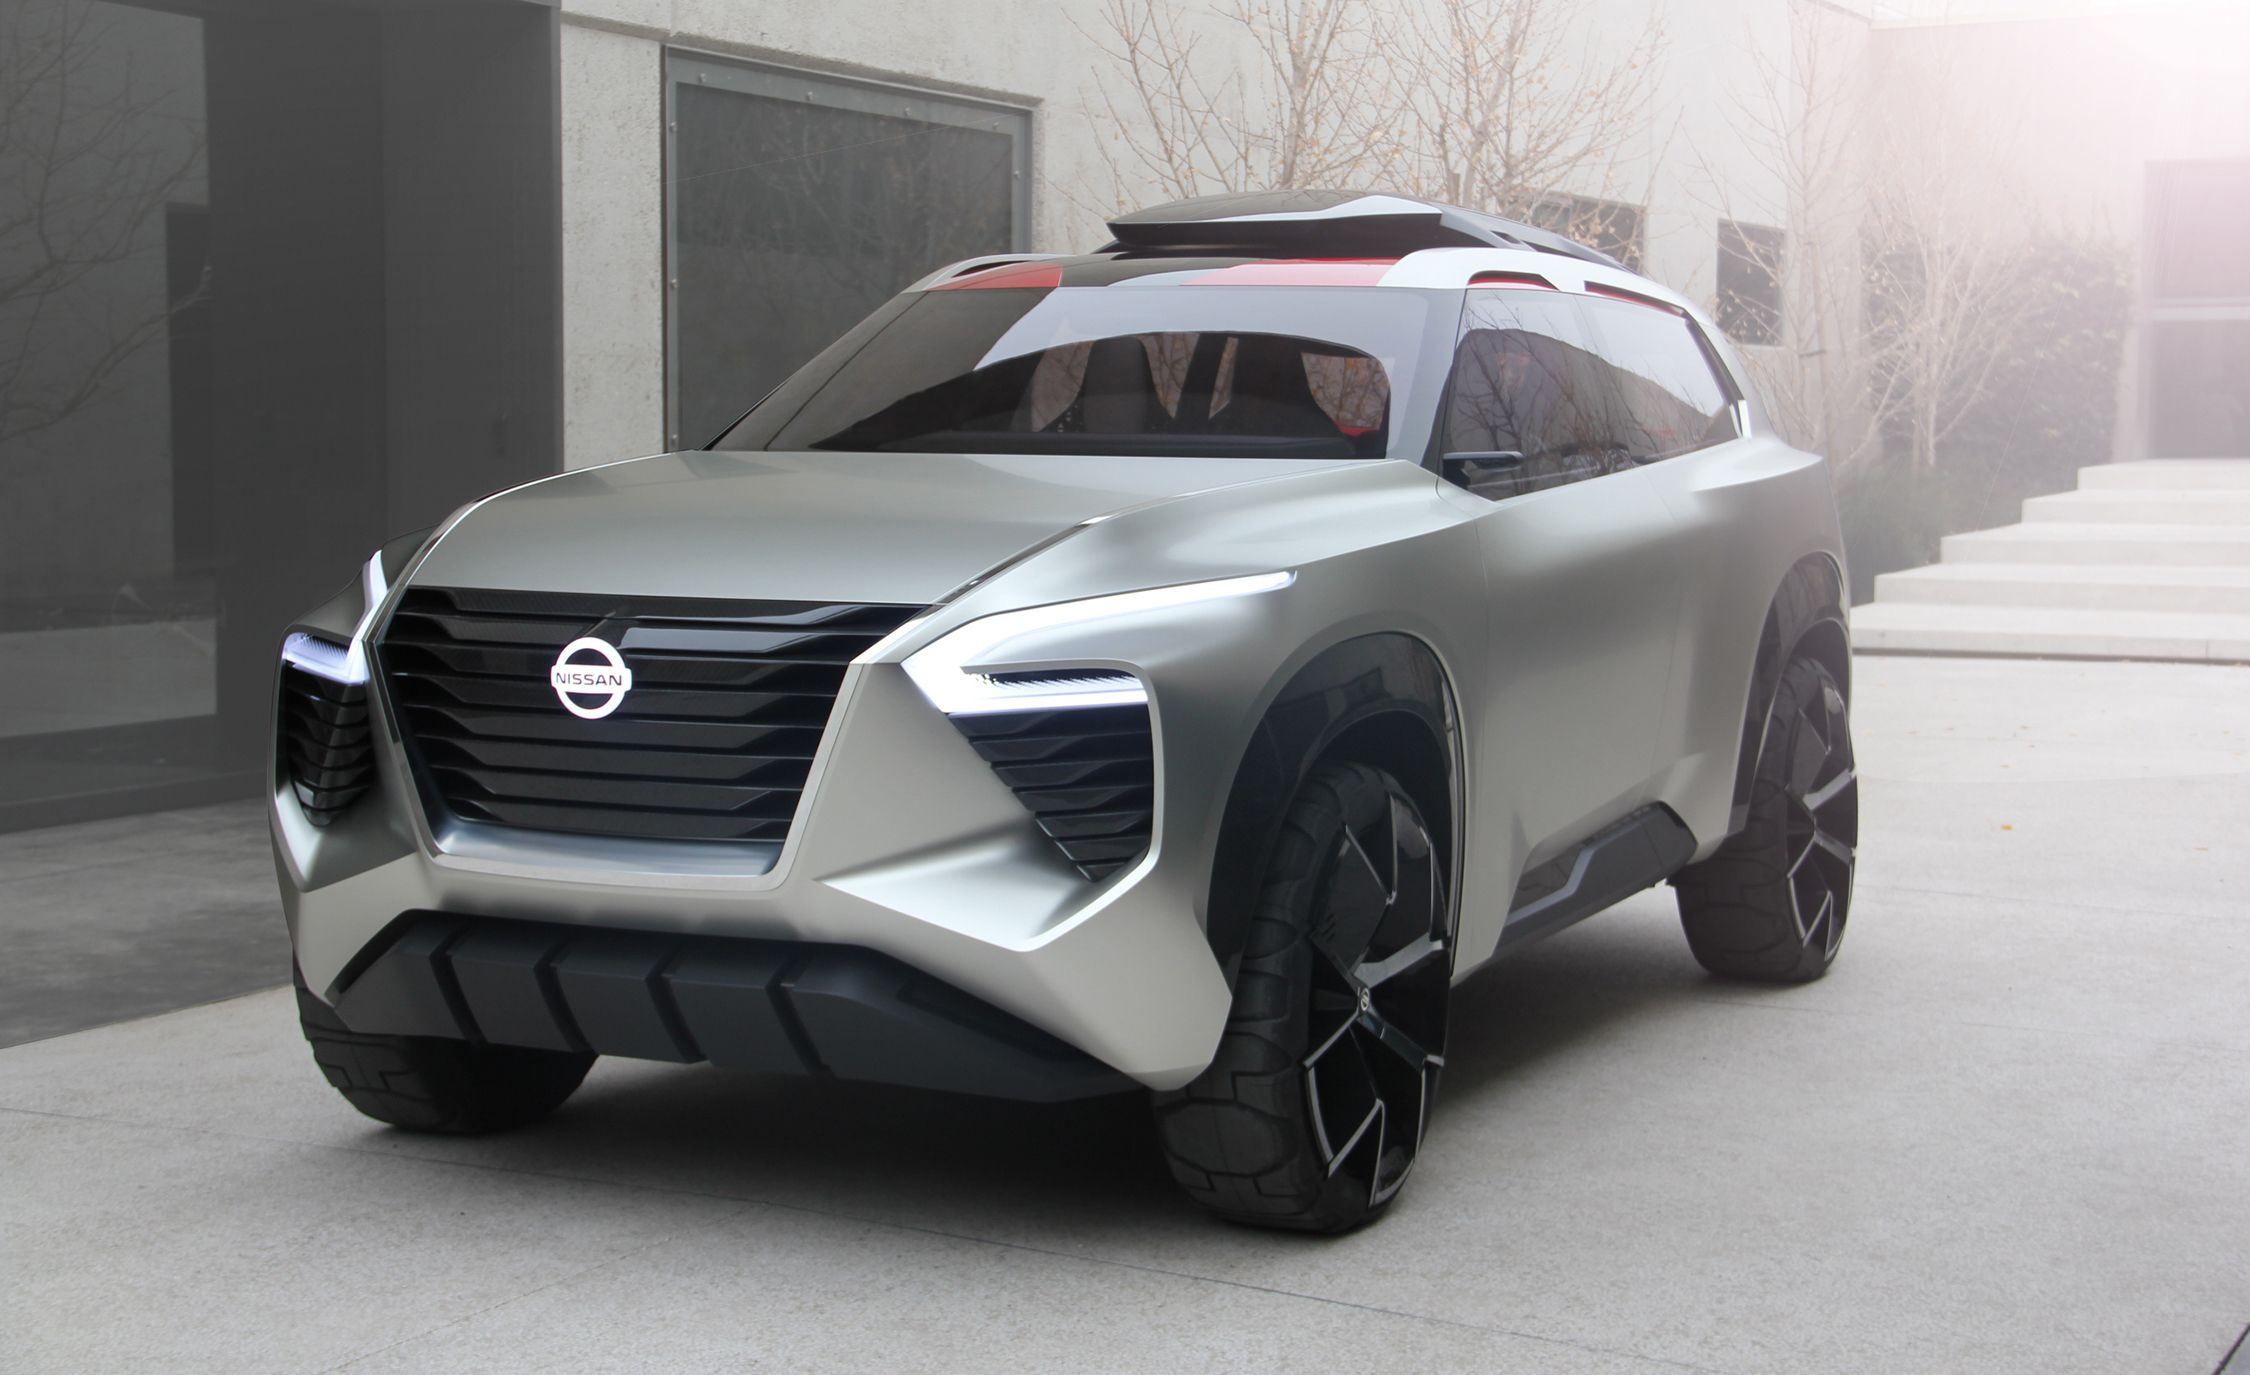 Nissan S Xmotion Concept Is This The Next Xterra News Car And Driver